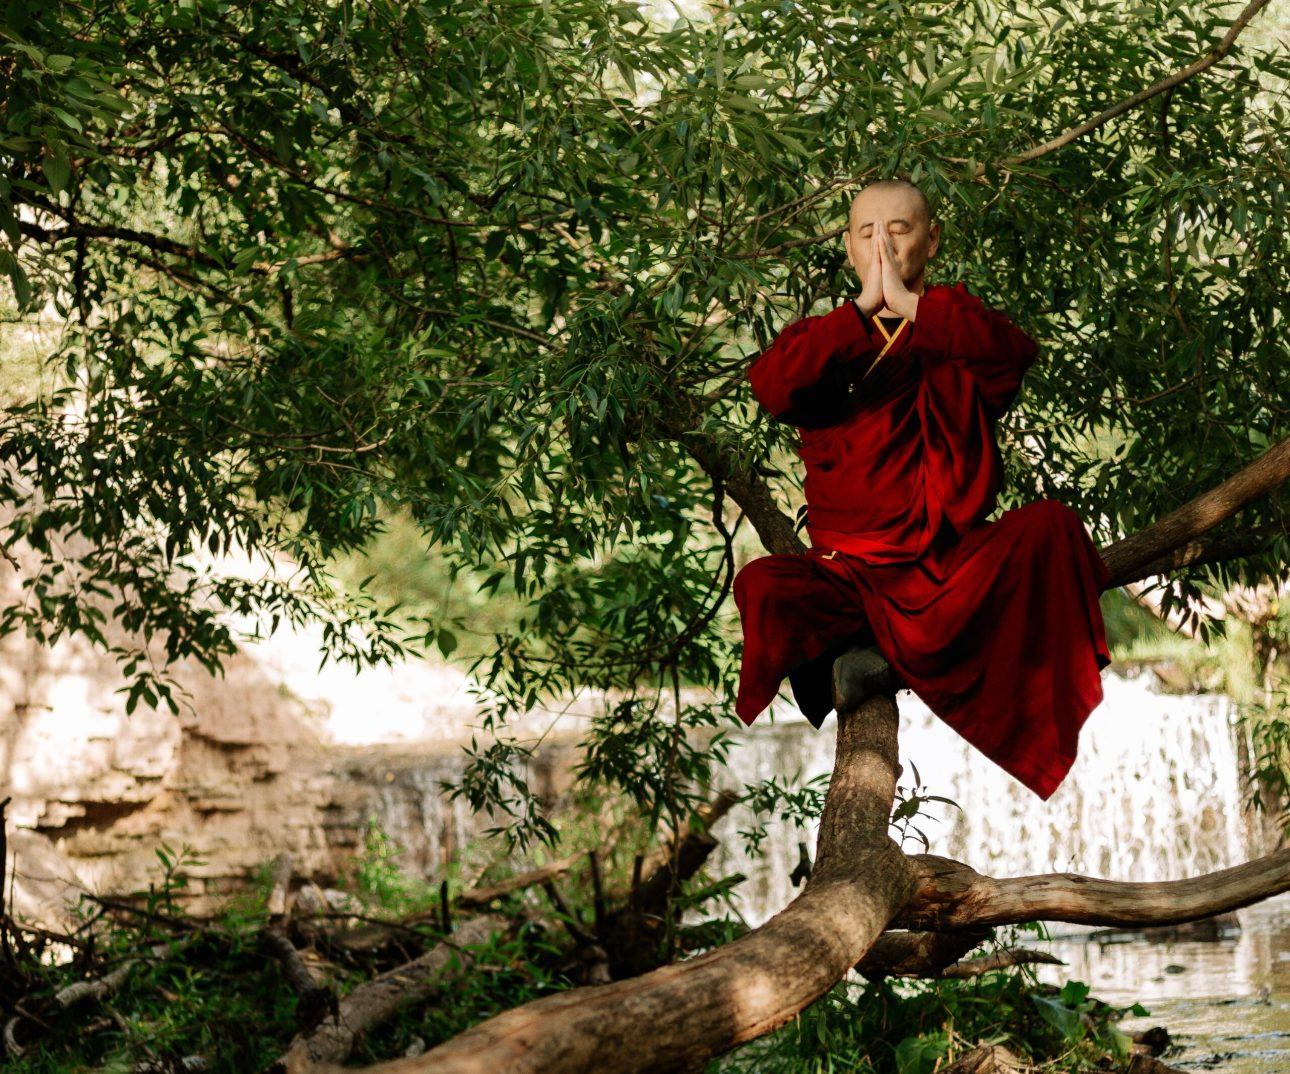 Photo of a monk meditating outdoors on a branch, by cottonbro via Pexels.